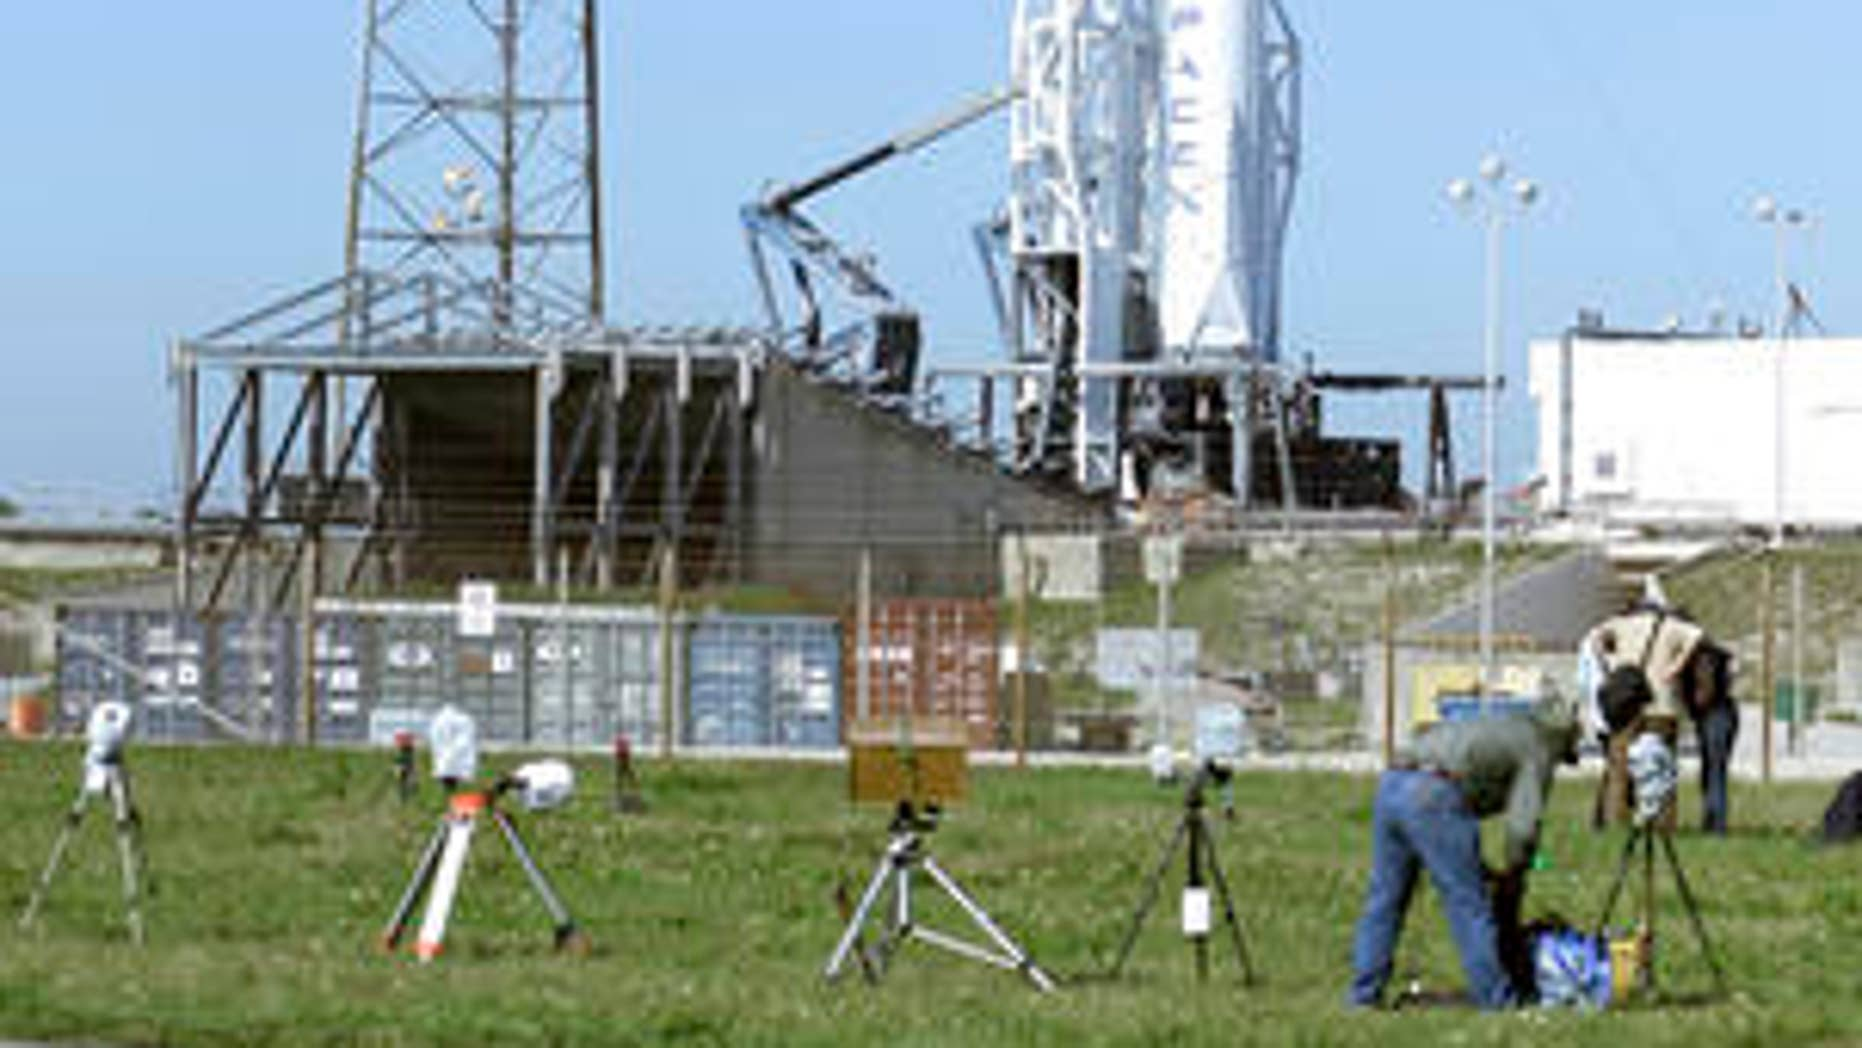 The SpaceX Falcon 9 rocket stands ready for launch at the Kennedy Space Center in Cape Canaveral, Fla., Friday, April 8, 2016. The rocket, scheduled for launch later today, is set to deliver almost 7,000 pounds of science research, crew supplies, and hardware to the International Space Station. (AP Photo/John Raoux)